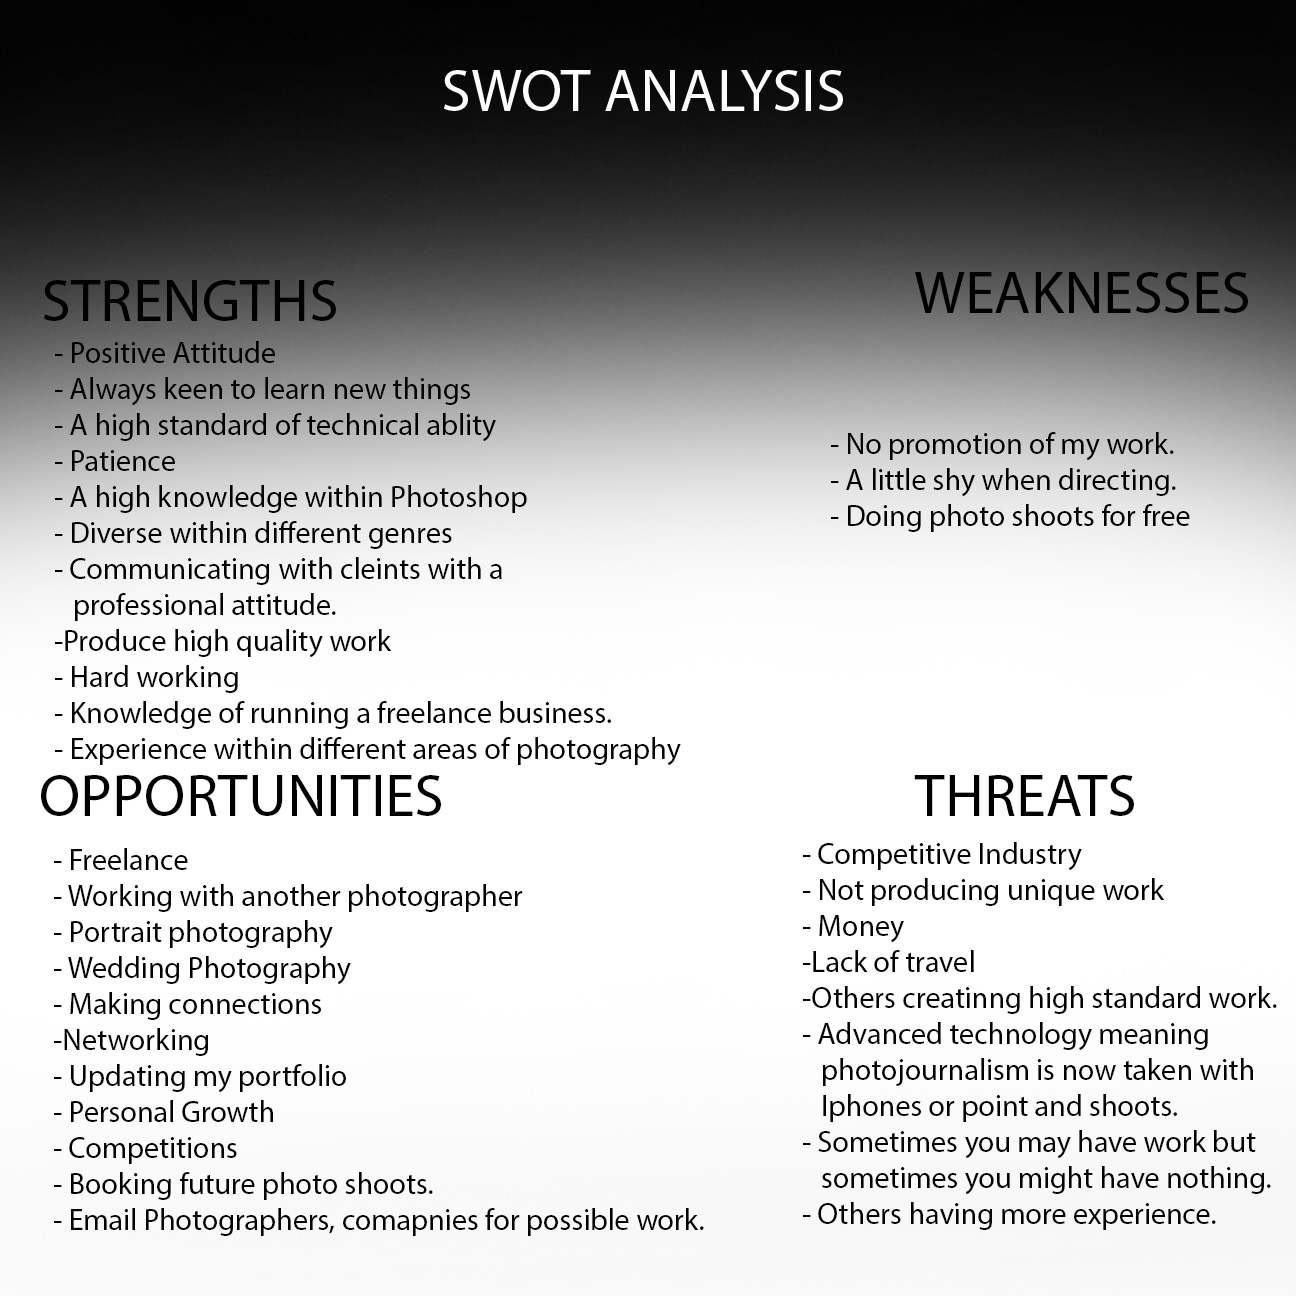 201mc swot analysis before after jade alexander photography overall i have really improved on my weakness and many have been turned into strengths i feel i now have more opportunities now i have gained experience